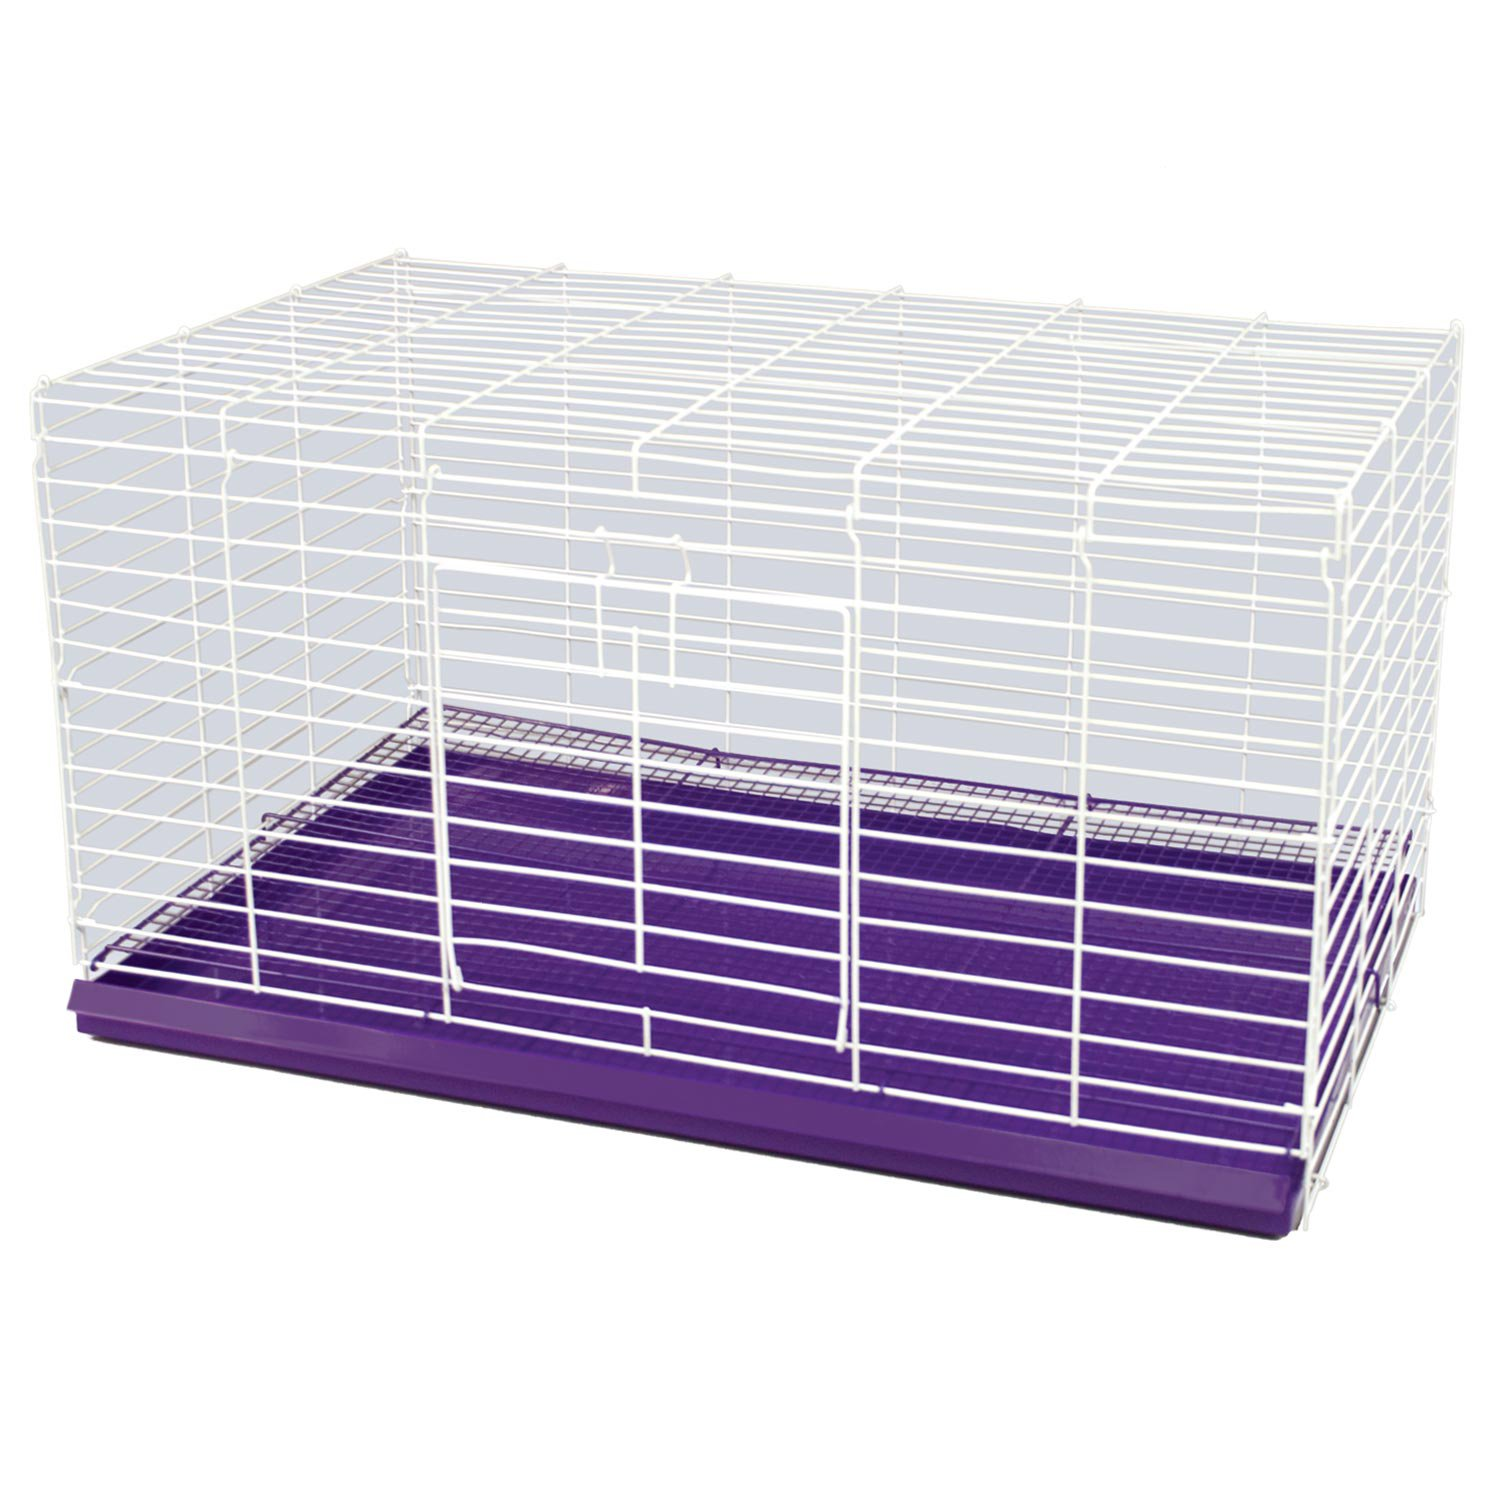 When you keep a pet bird, you need more than just a cage to keep your bird's environment clean and healthy. From bird seed guards to cage aprons, from cage covers to cage liners, we bring you the essentials to keep your bird happy and in good health.